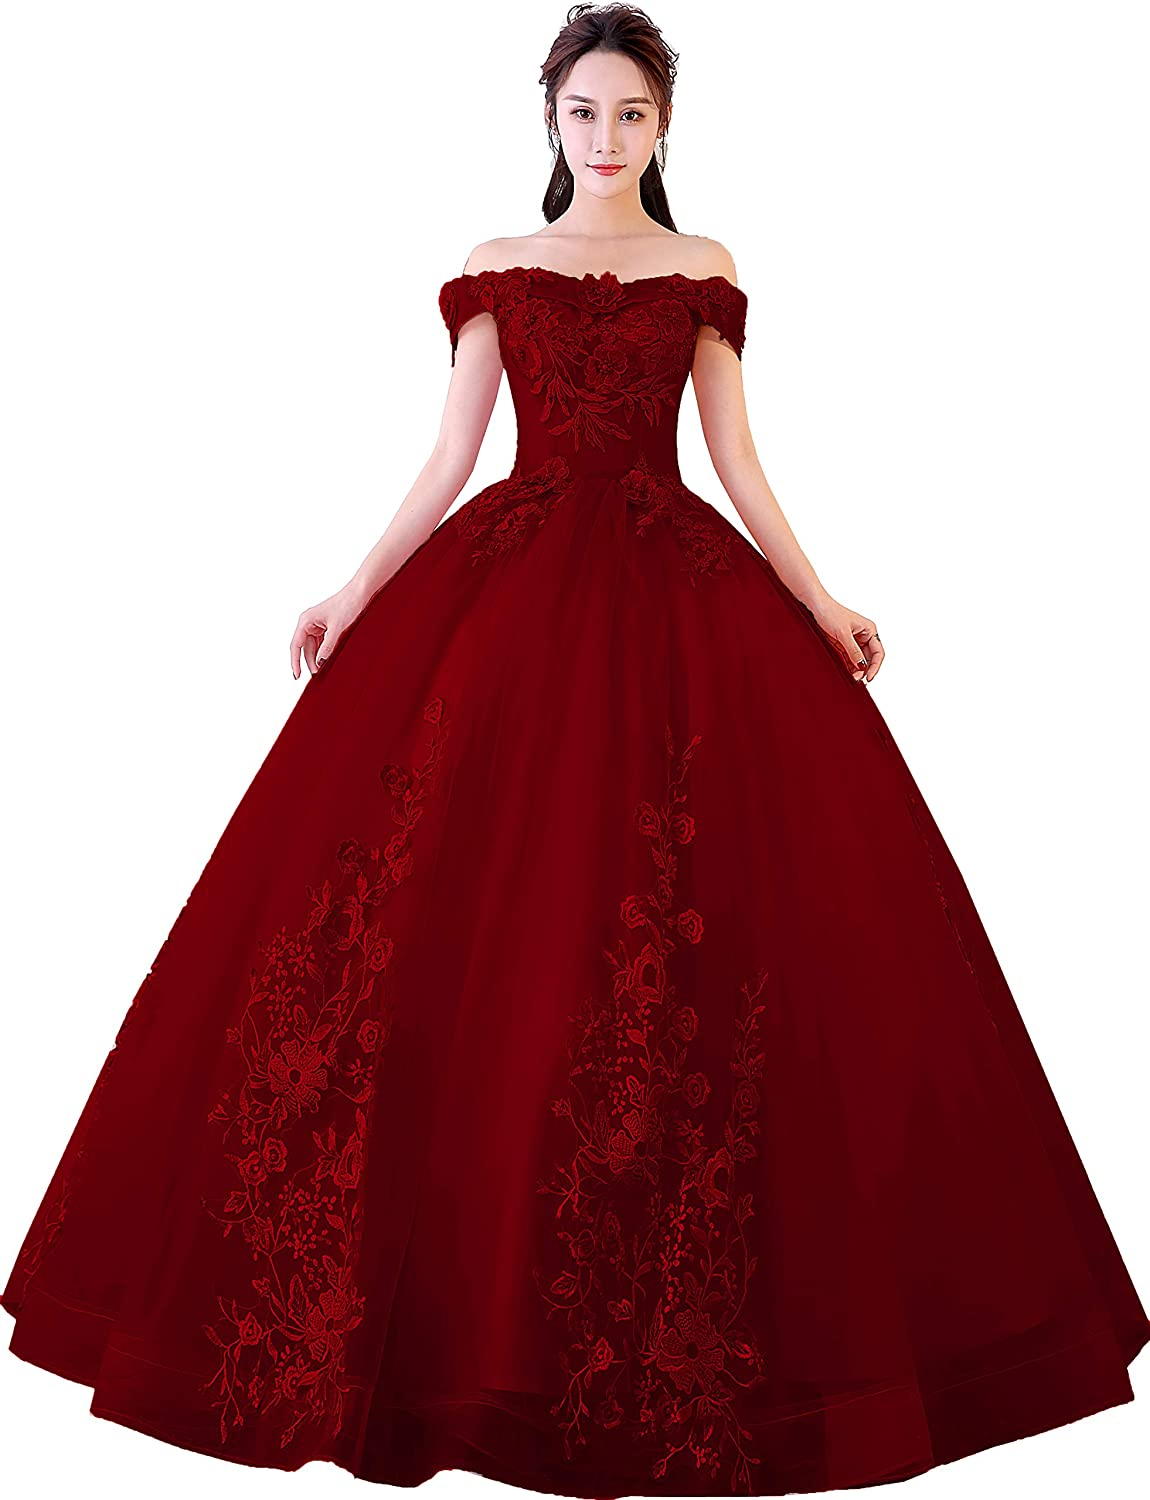 Burgundy Okaybrial Women's Sweet 16 Quinceanera Dresses bluesh Pink Off Shoulder Lace Long Prom Ball Gowns Plus Size